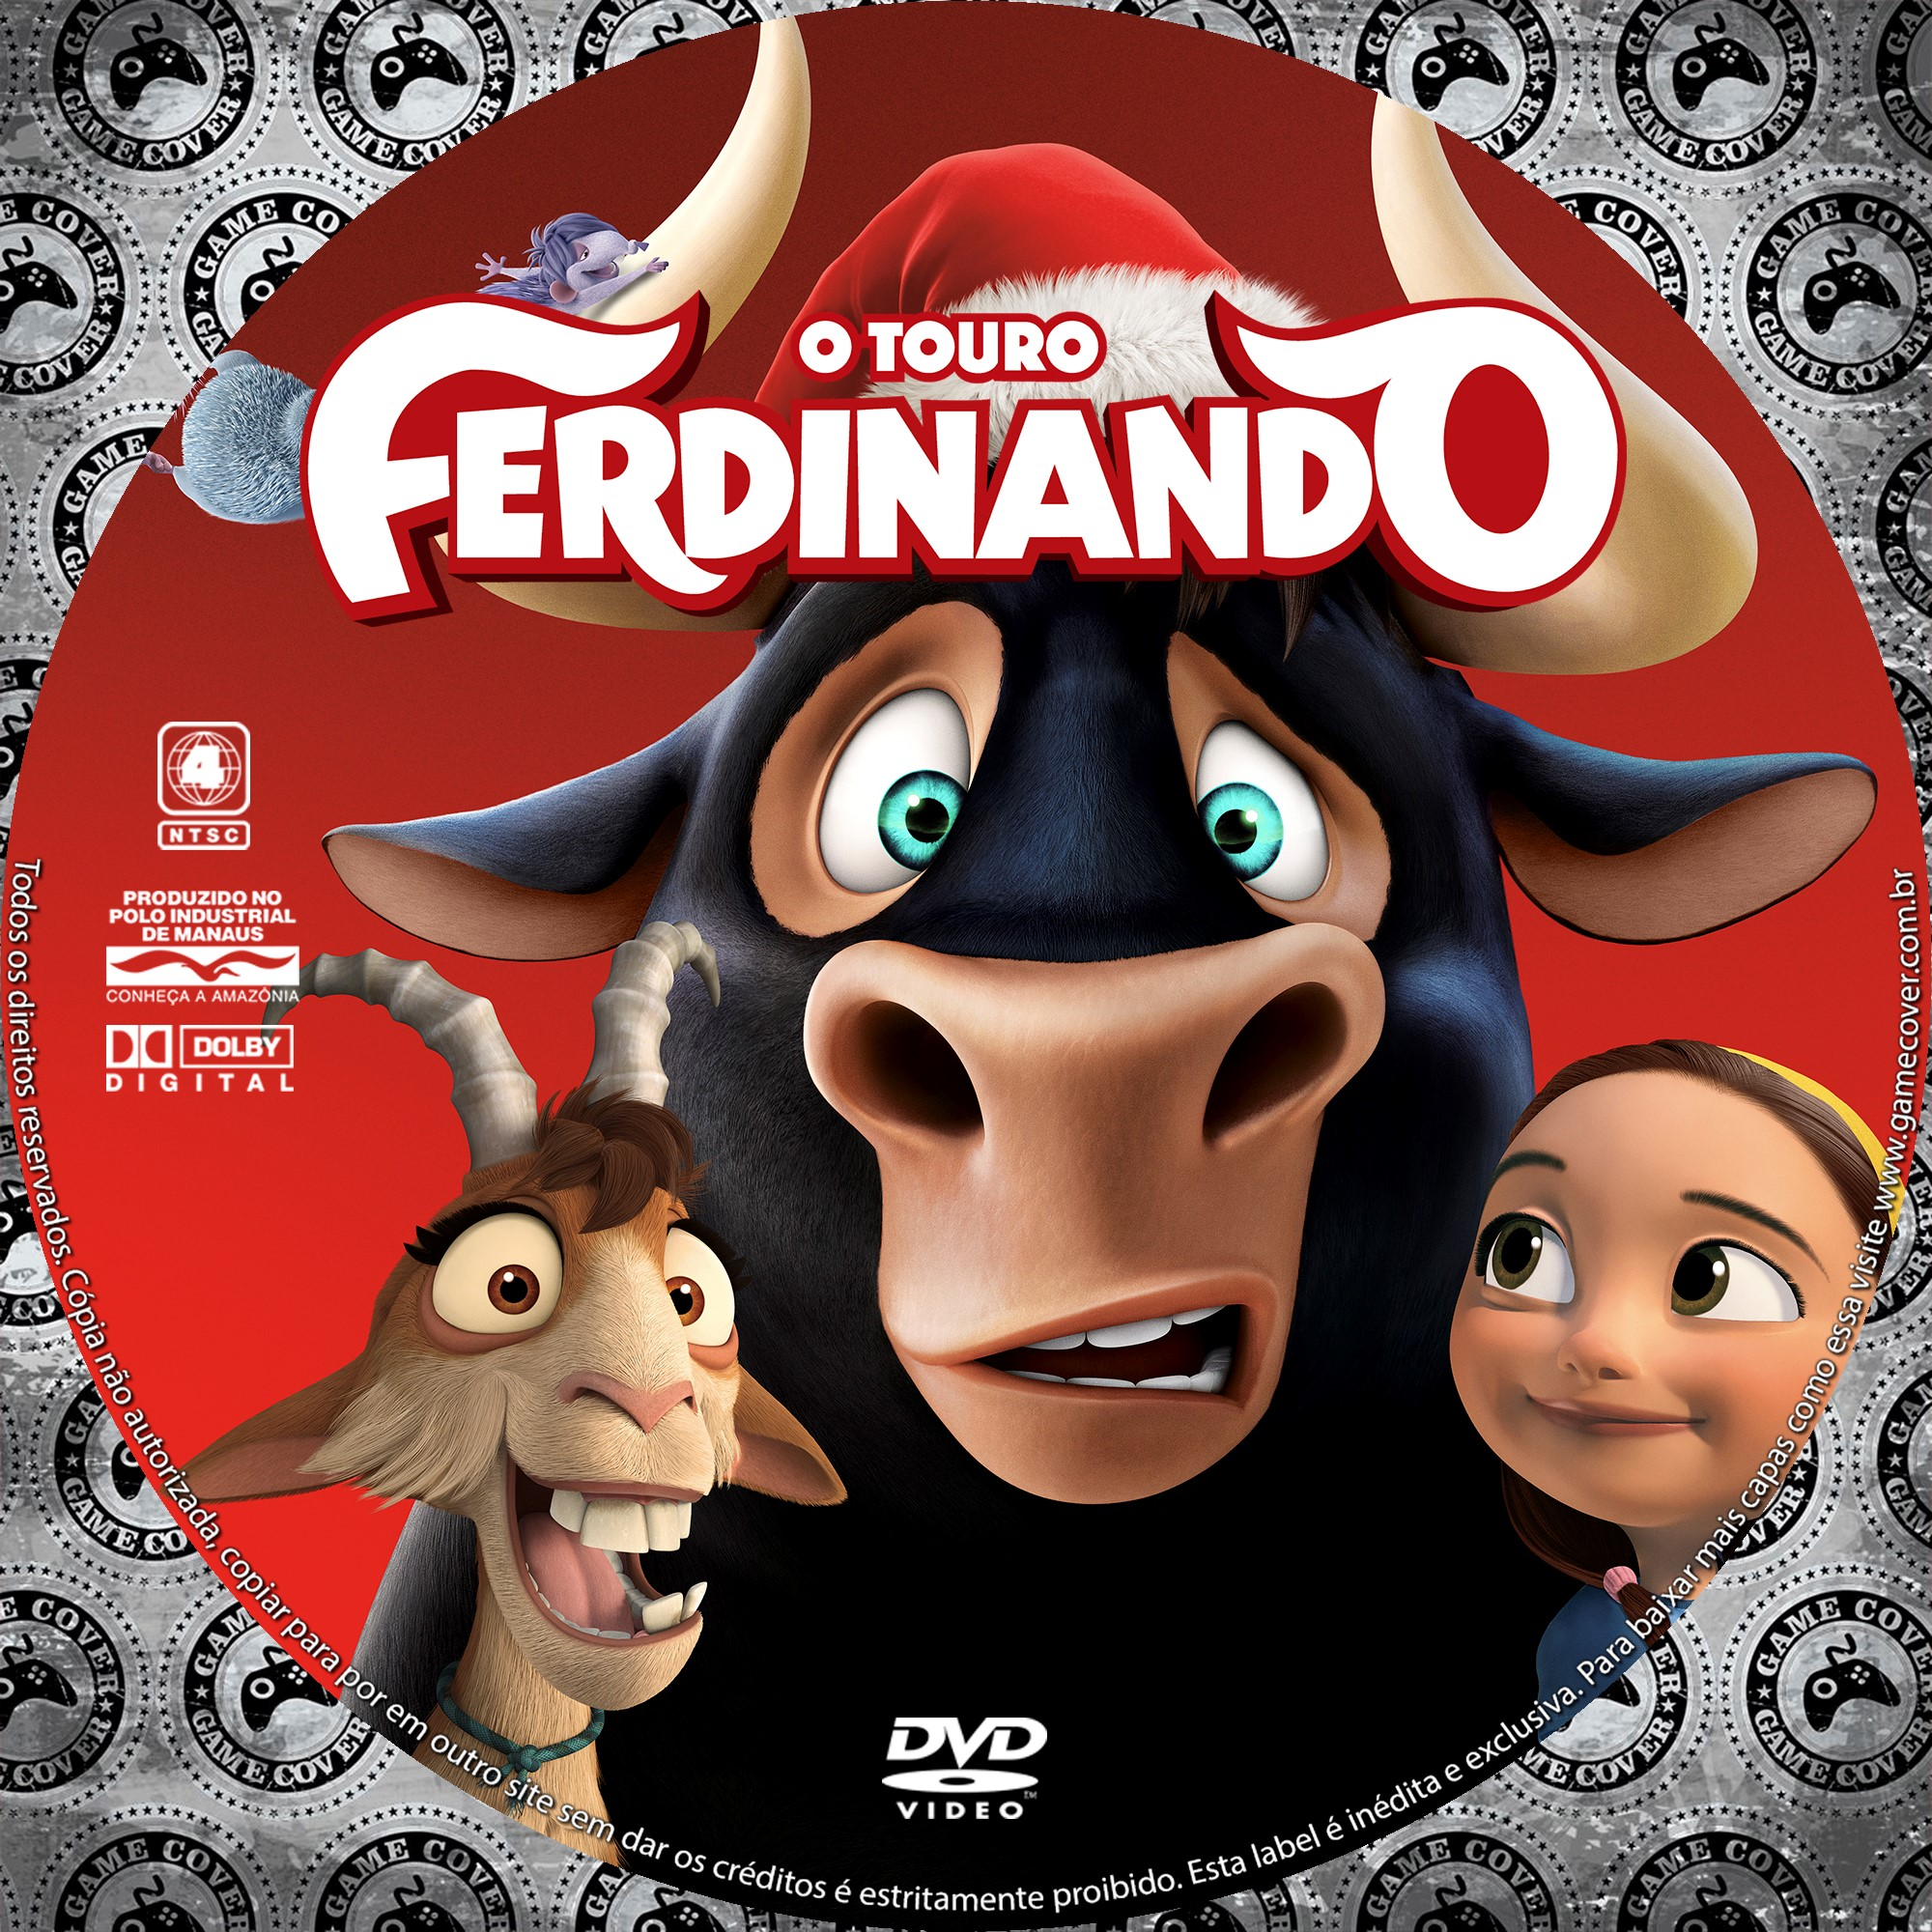 Torrent Ferdinand (O Touro Ferdinando) Download Dublado 720p 1080p